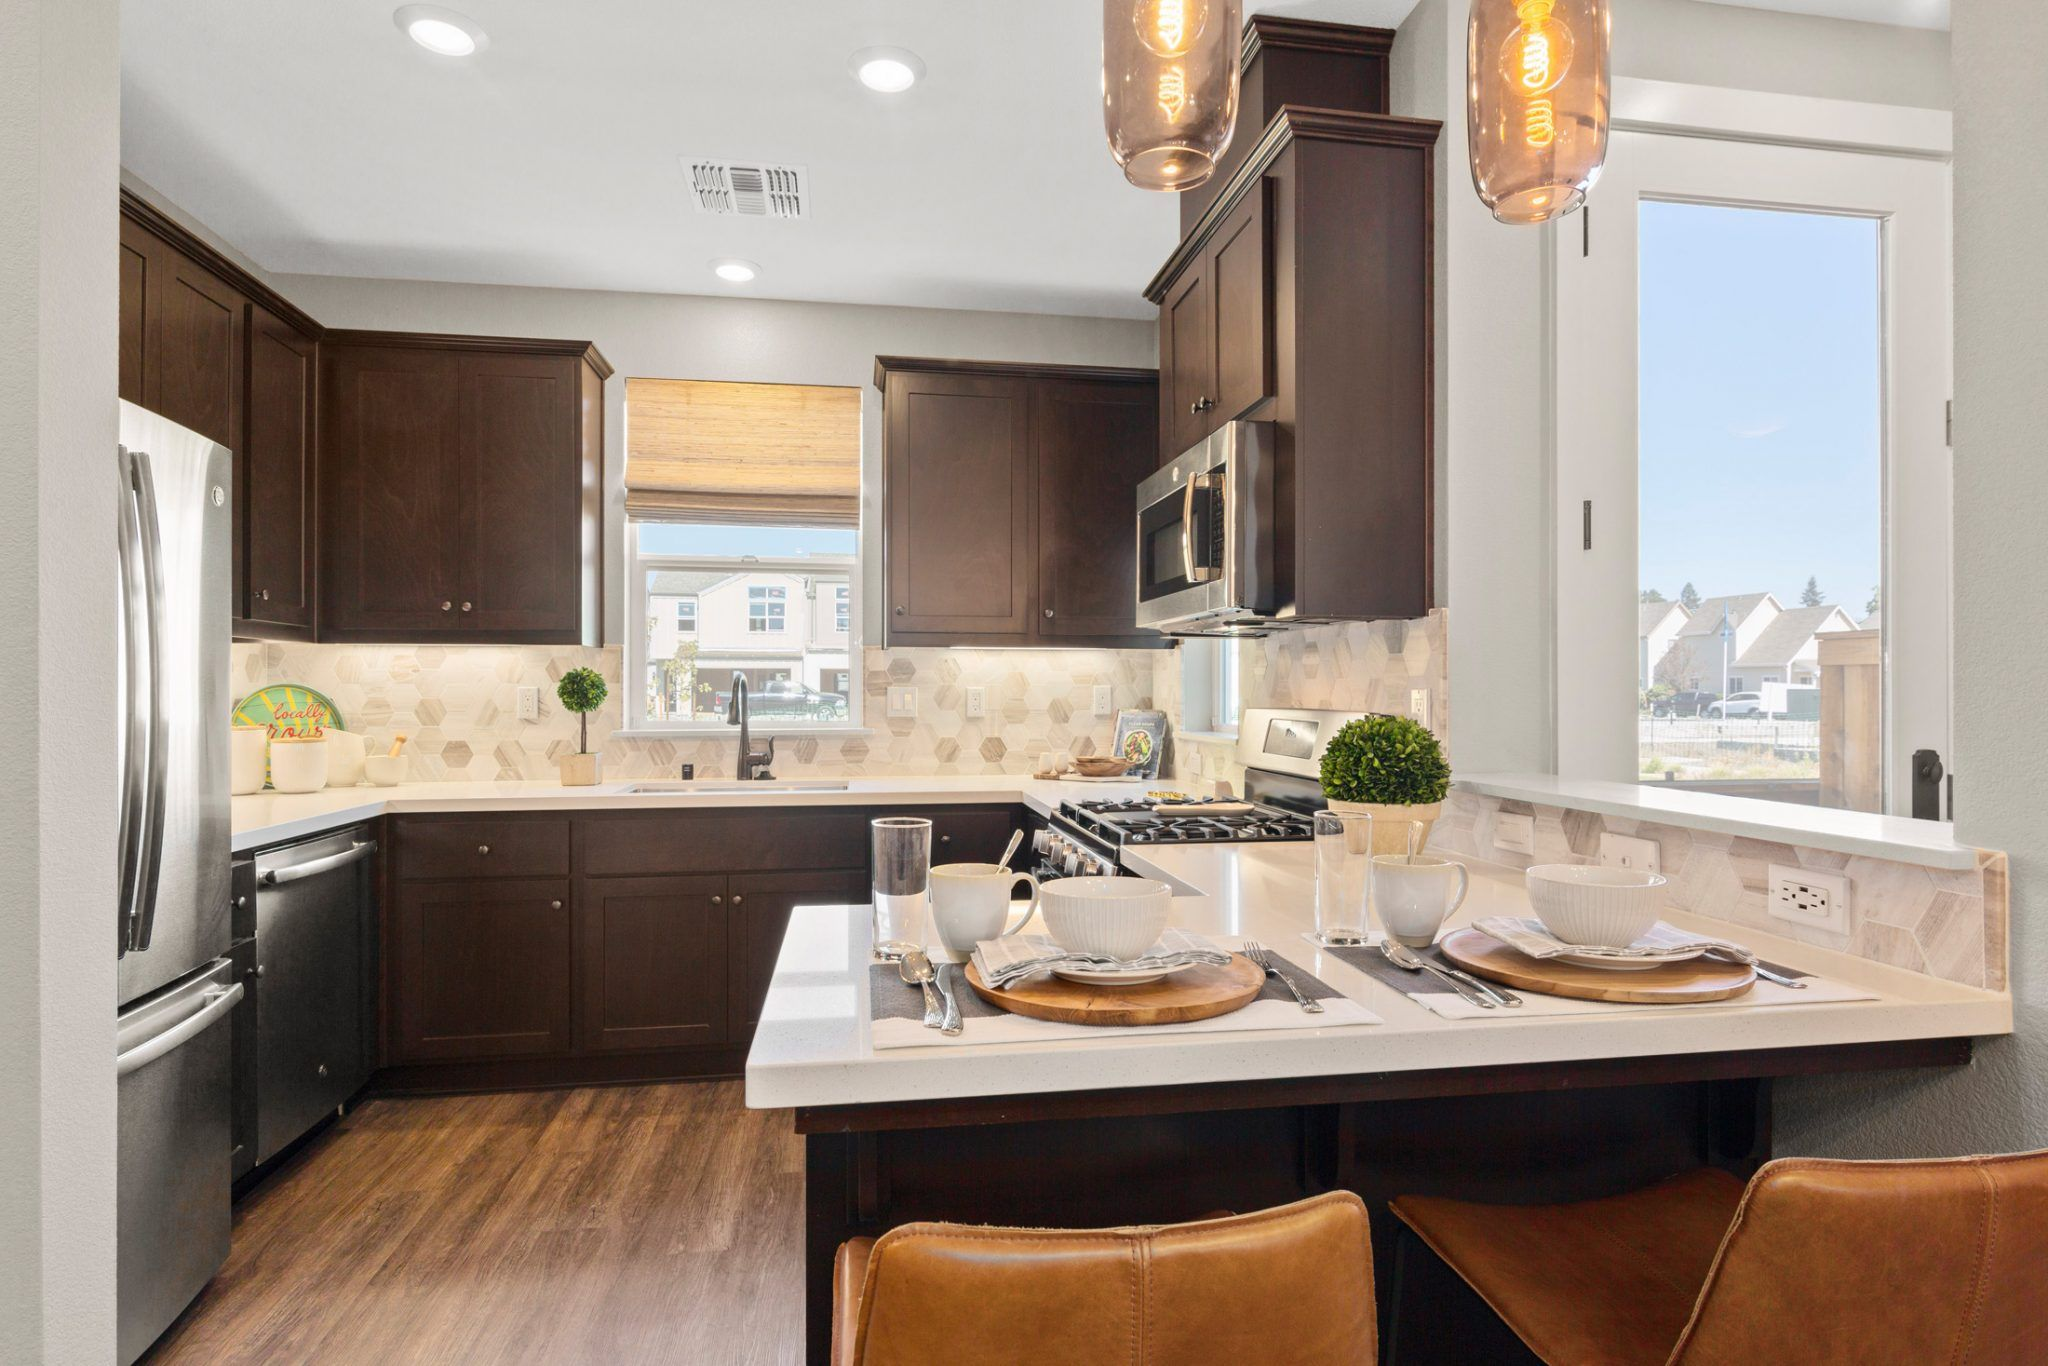 Kitchen featured in the Plan A By Blue Mountain Communities in Santa Rosa, CA